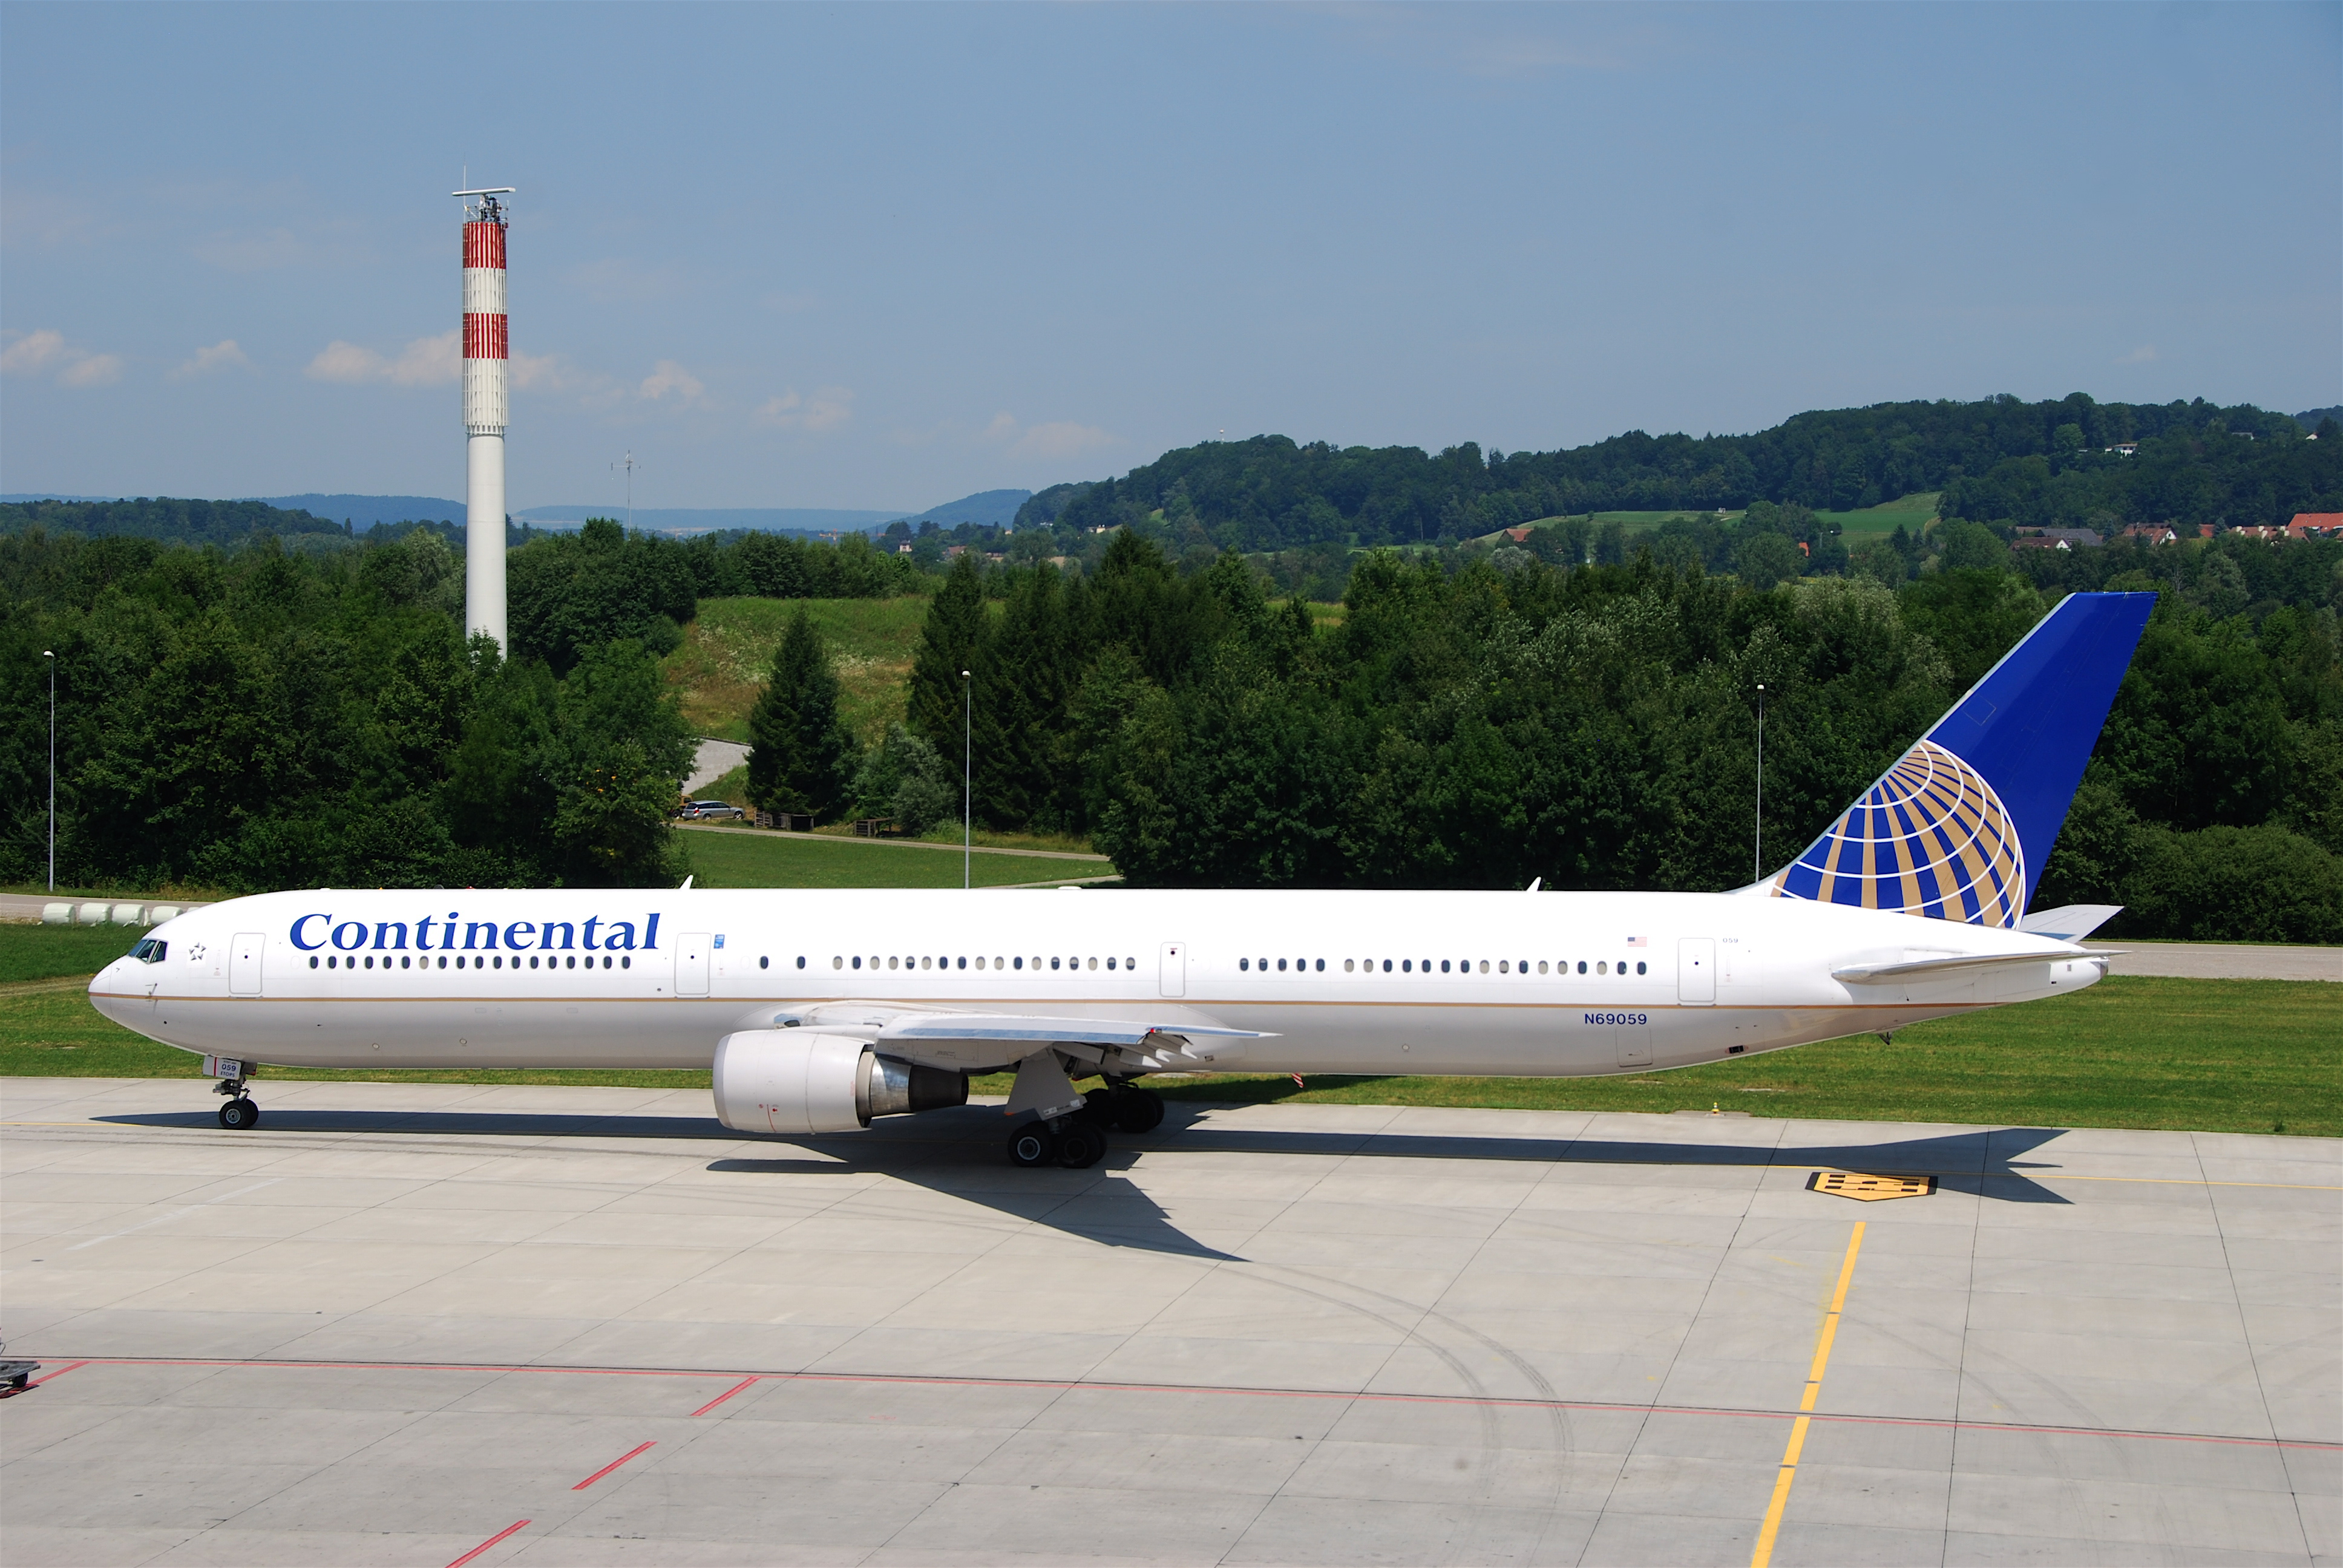 File:Continental Airlines Boeing 767-400; N69059@ZRH;16.07.2010 583bk (4799578145).jpg - Wikimedia Commons